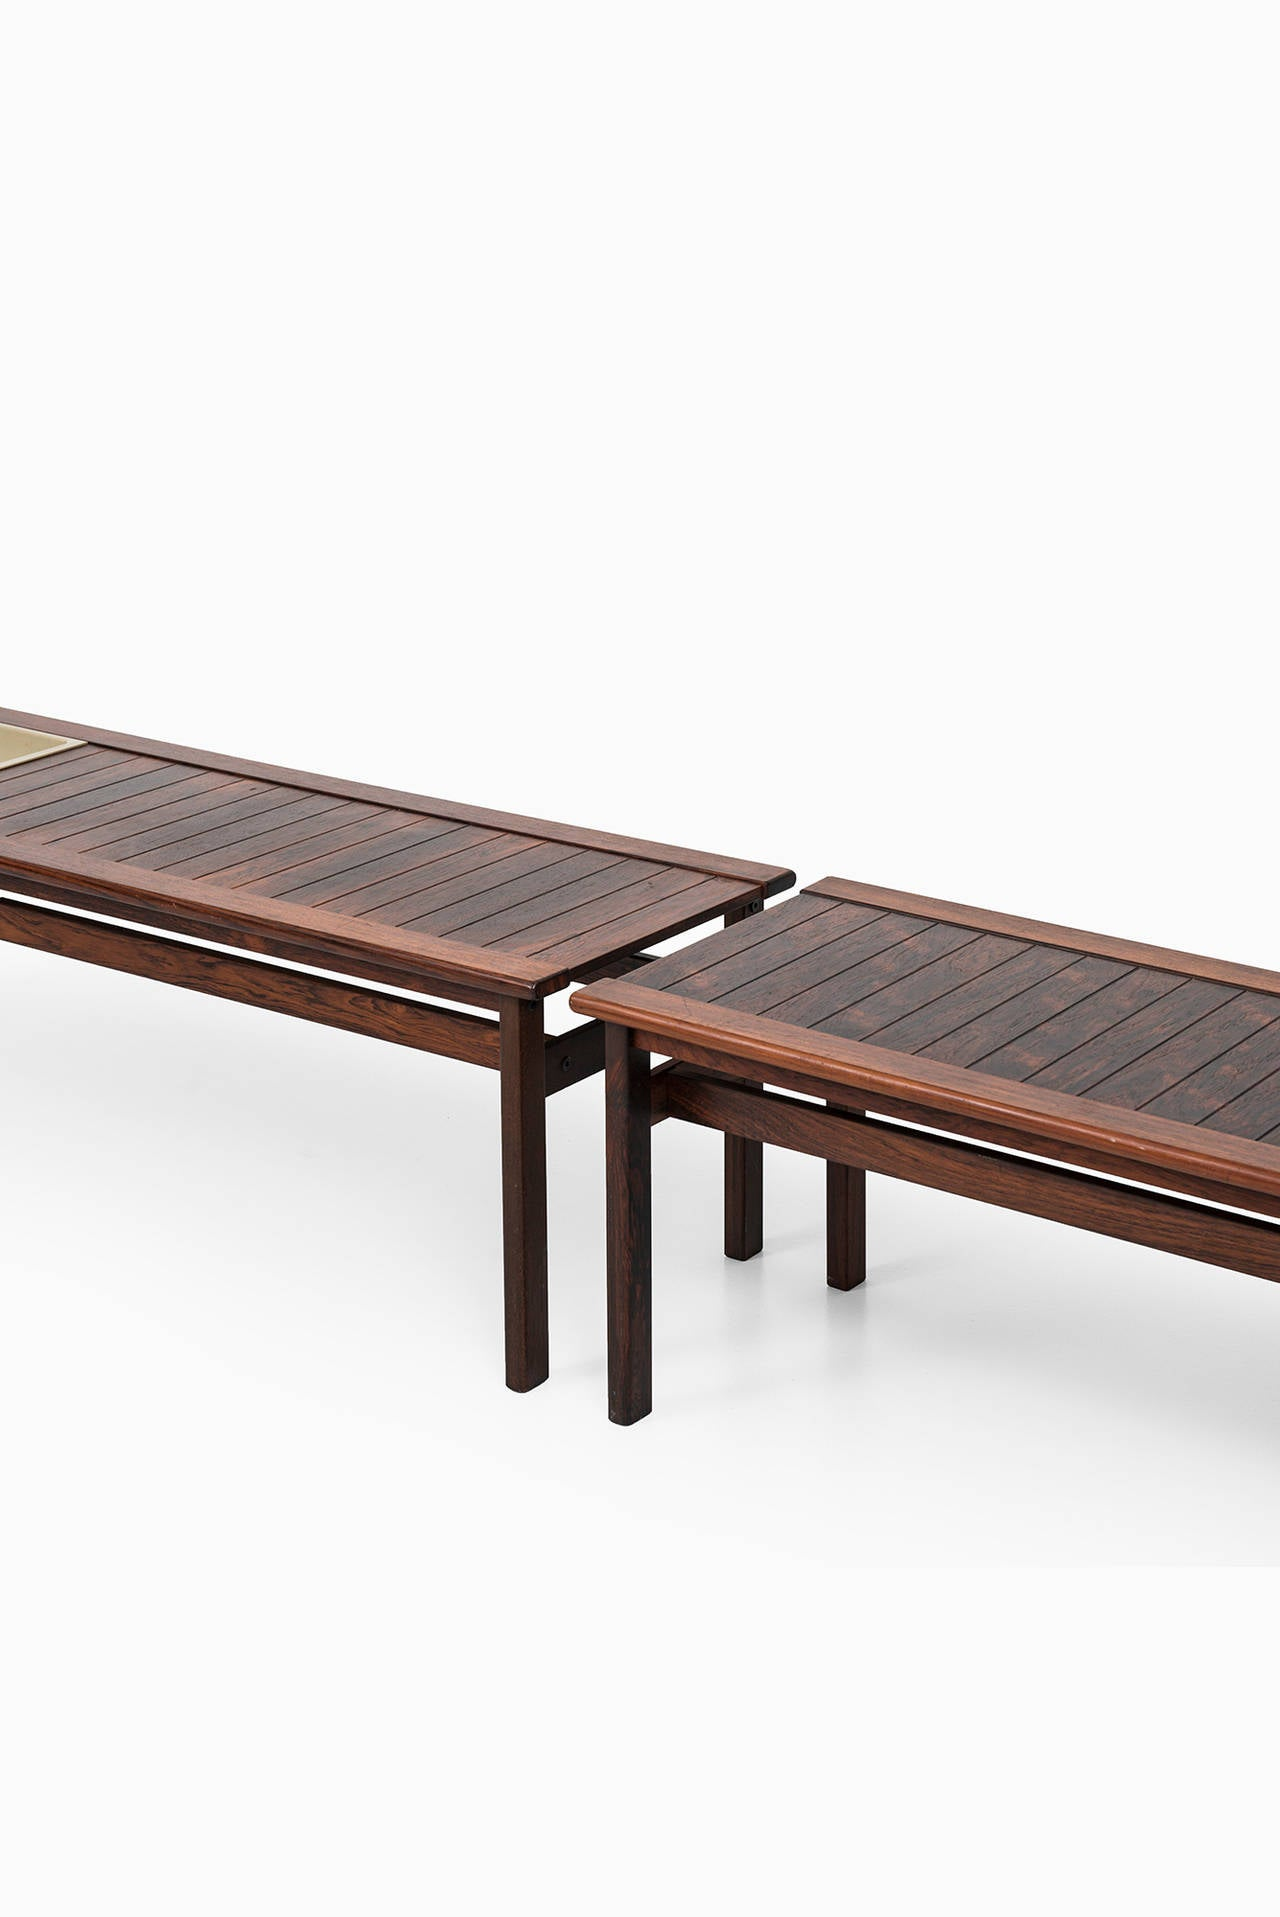 Rosewood Benches With Flower Box By Averskogs In Sweden 3